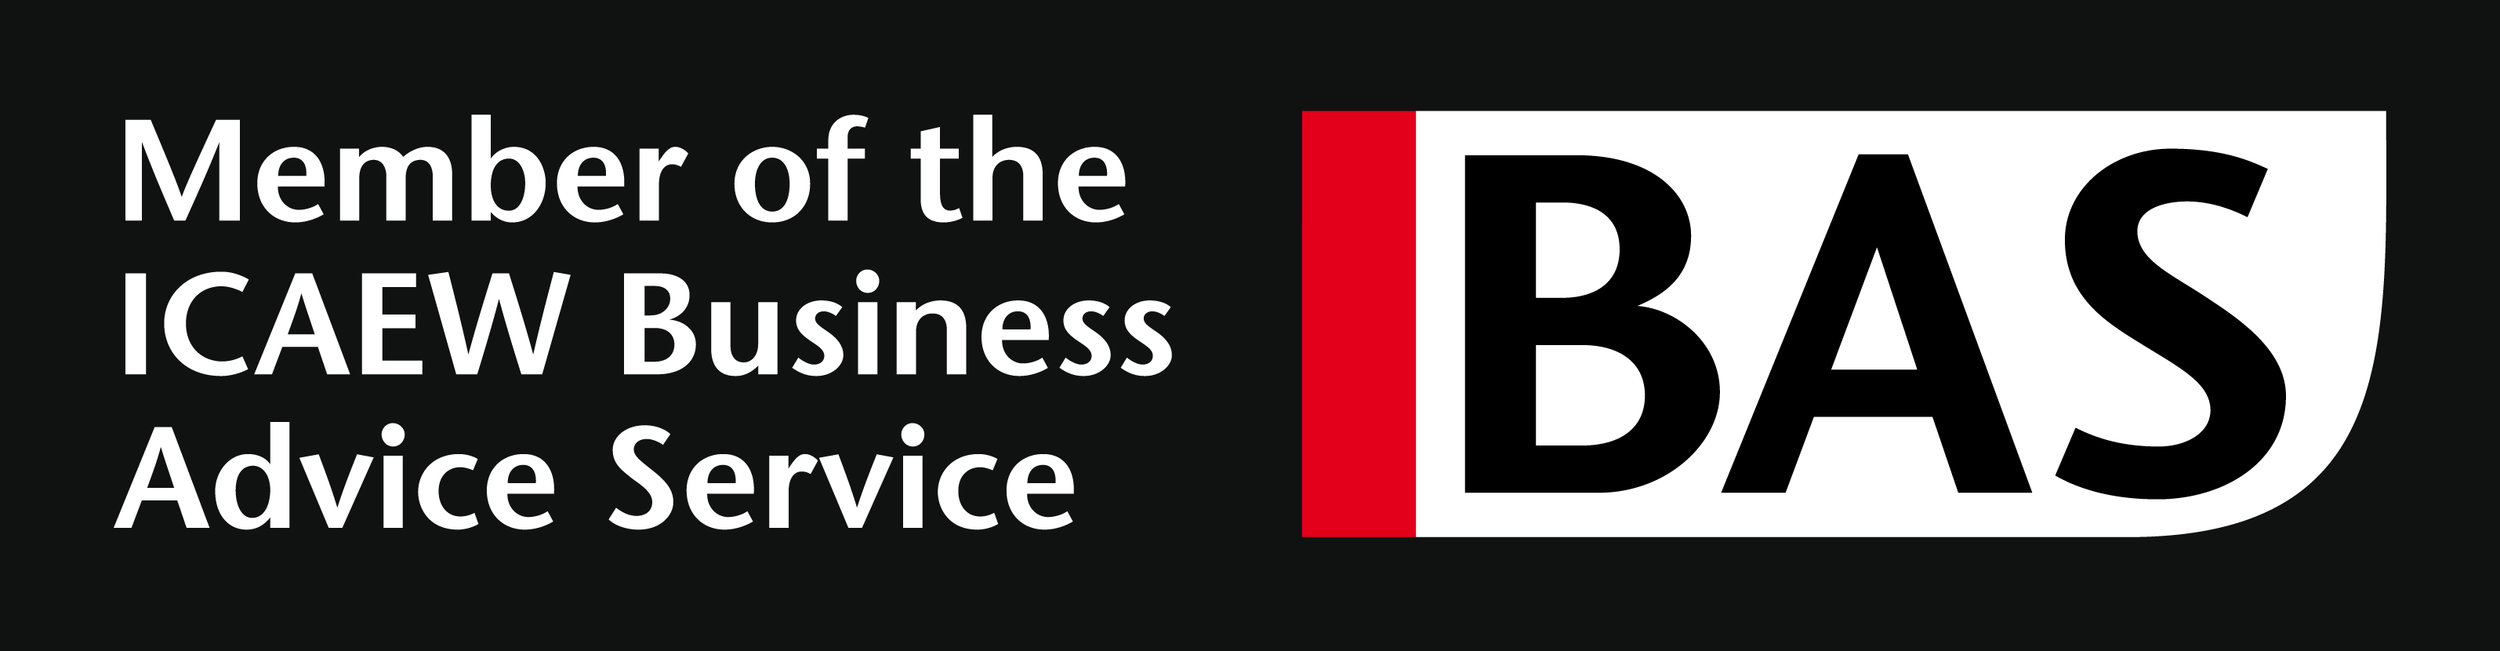 - As part of the ICAEW Business Advice Service we offer an initial one hour free consultation to SMEs and Start-Ups, and advise them on their business needs. Get in touch now to arrange your meeting.